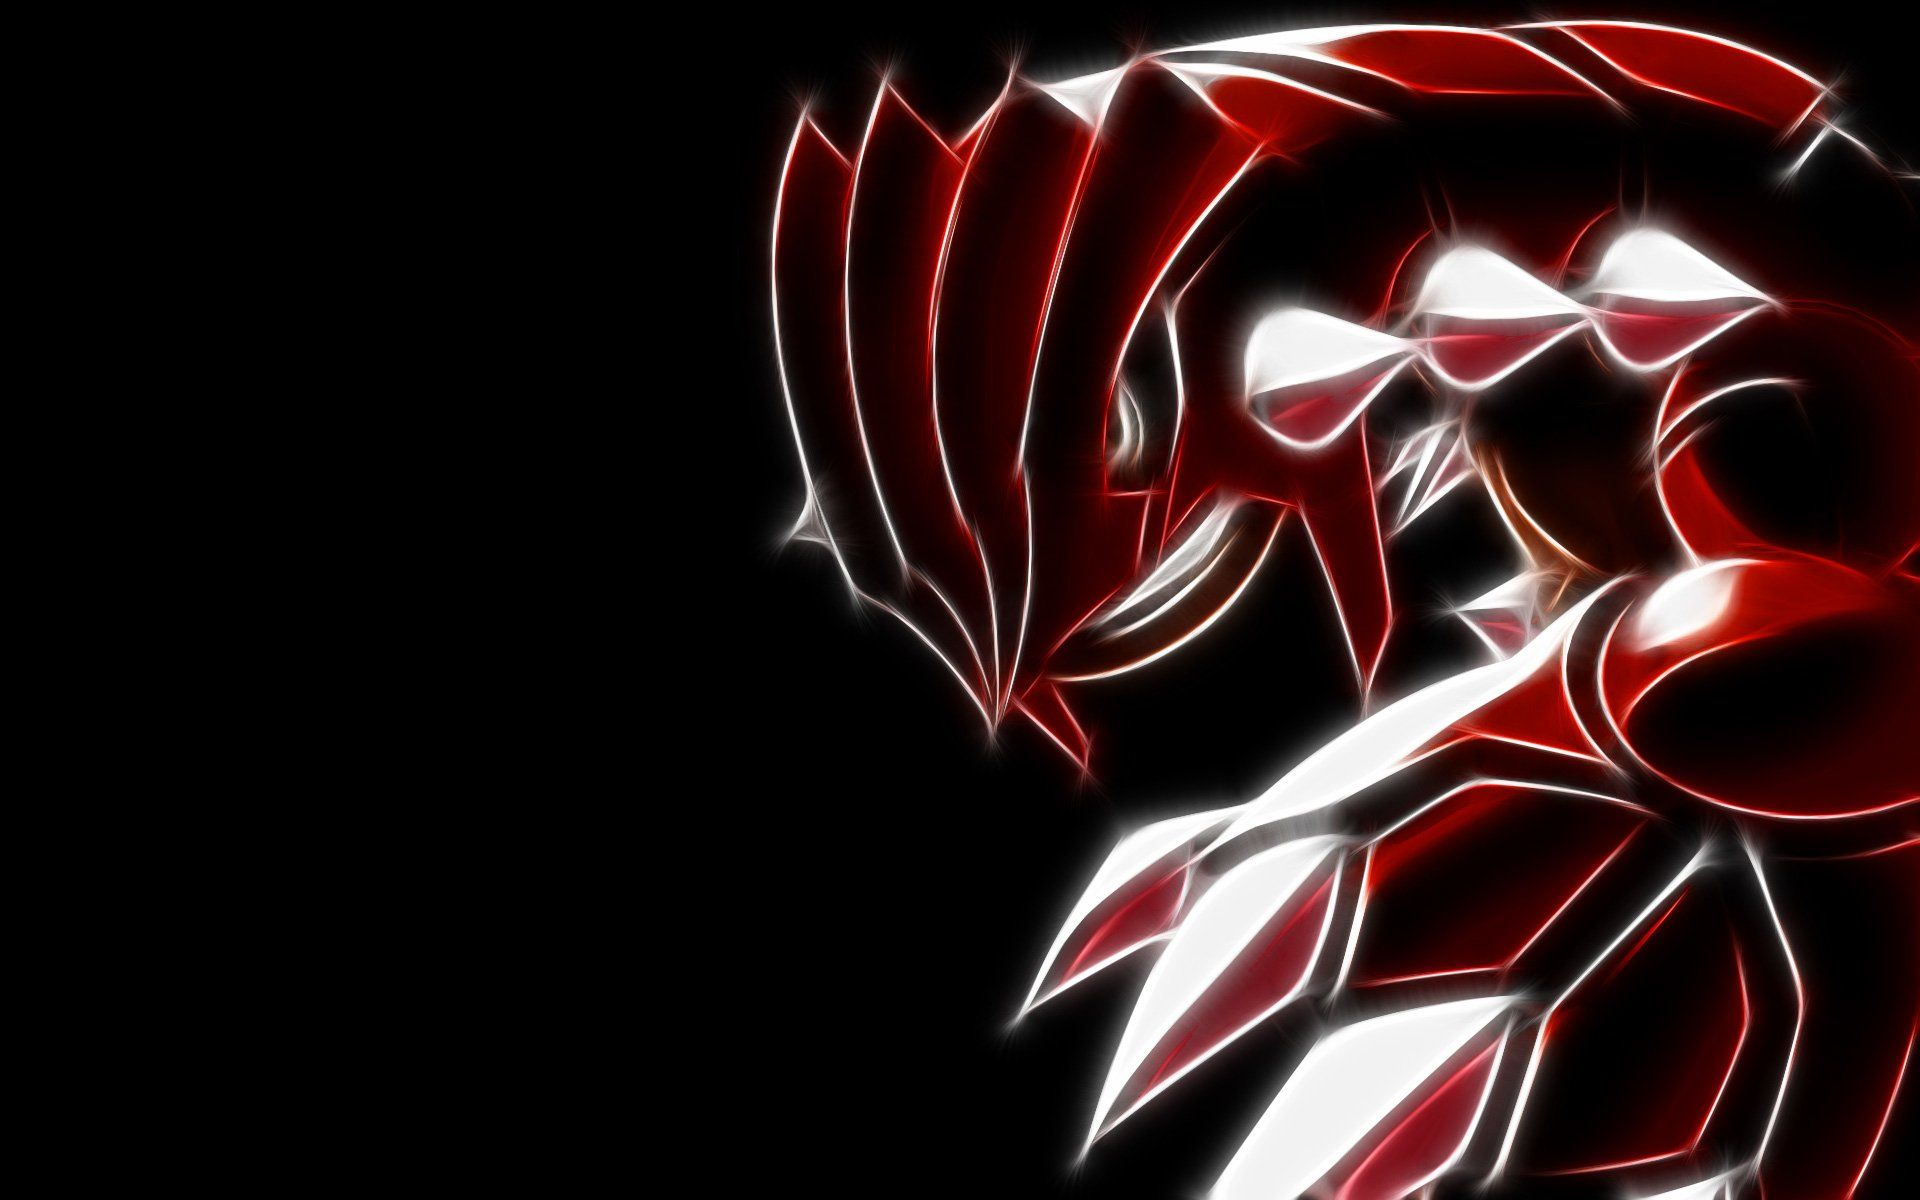 1920x1200 24 Groudon (Pokémon) HD Wallpapers   Background Images - Wallpaper Abyss